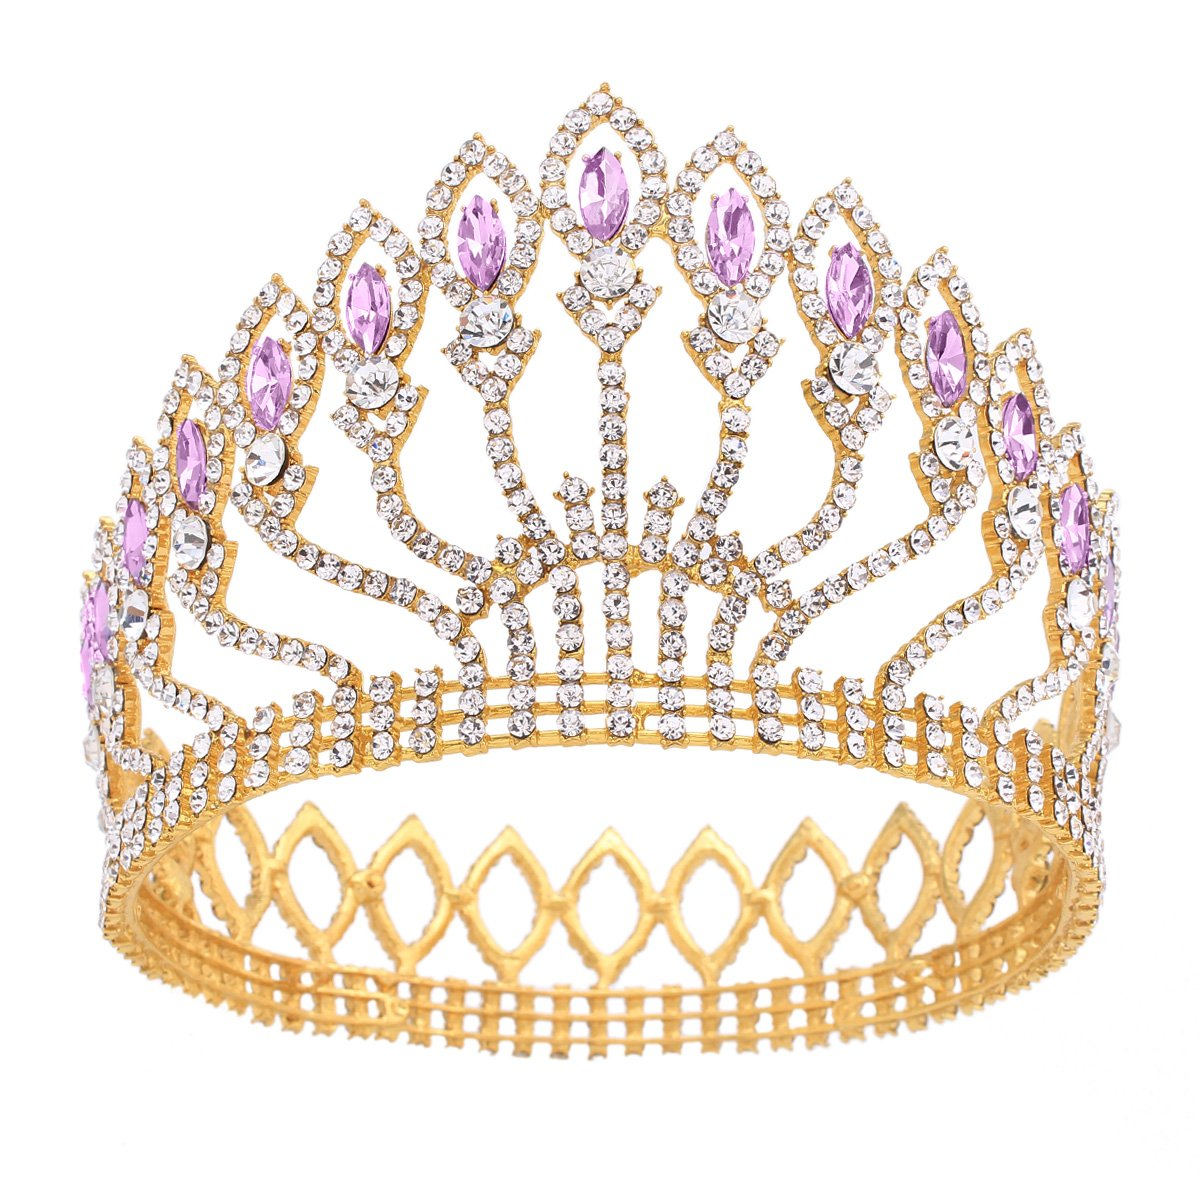 Stuffwholesale Marquise Crystal Crown Women Girl Queen Tiara Banquet Party Headwear (Gold/Purple)